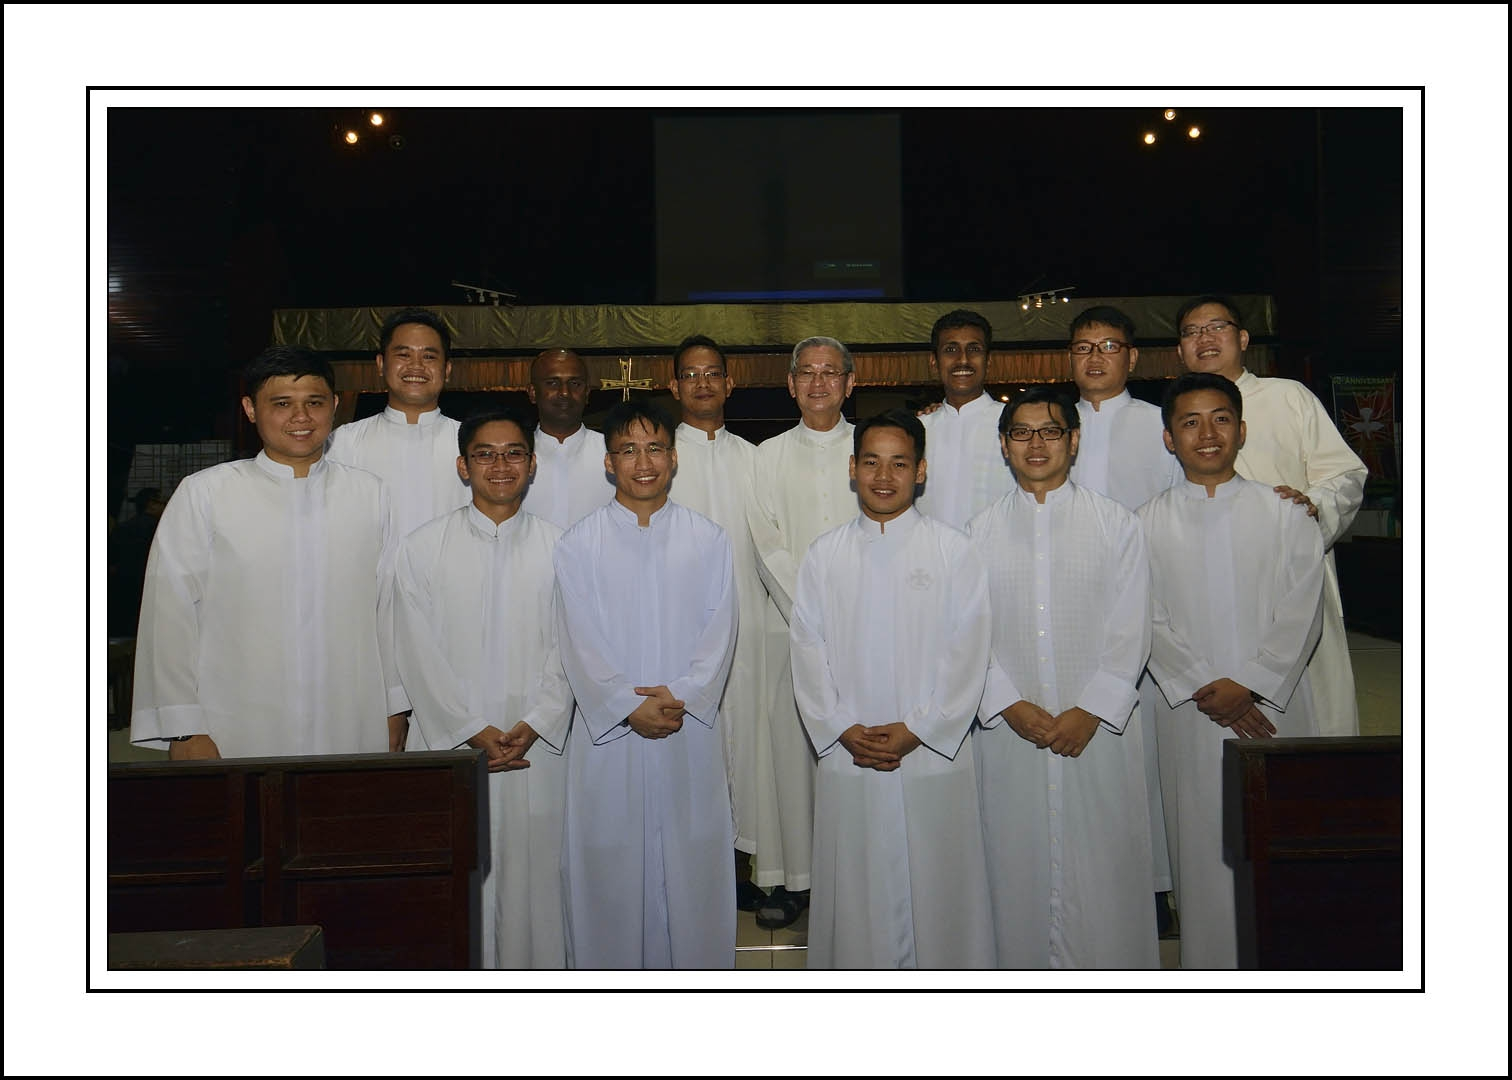 The neo-acolytes pose with Abp Ha for remembrance.